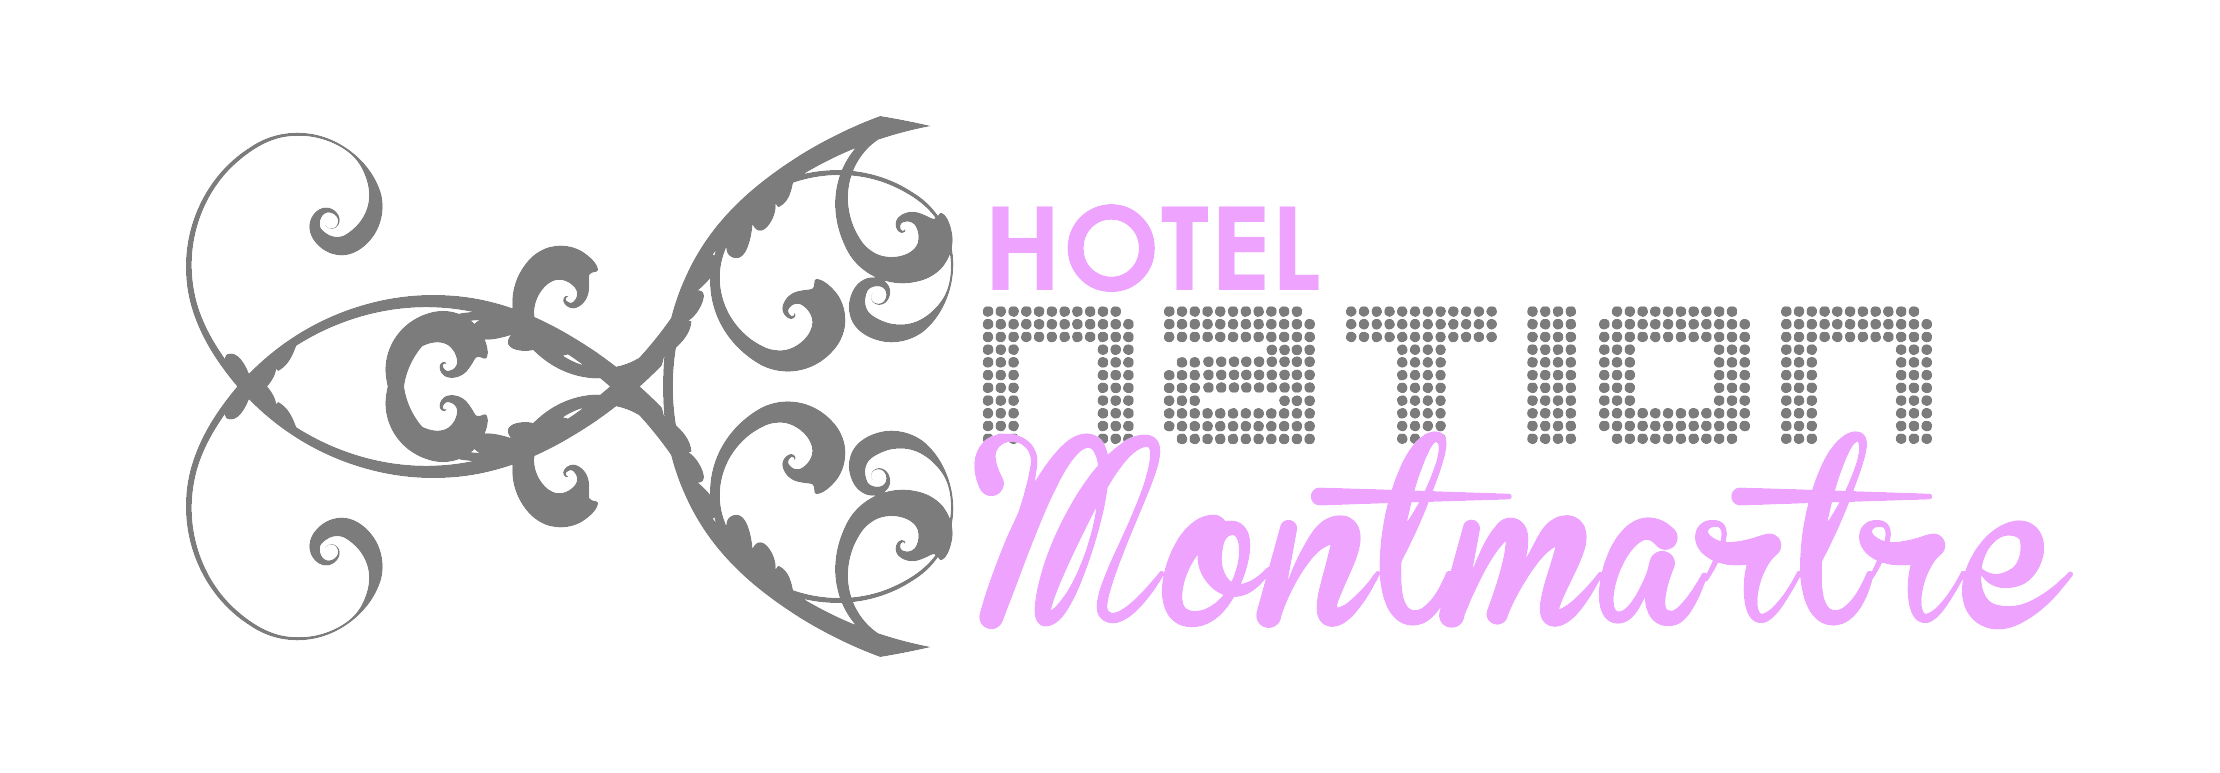 Hotel nation montmarte